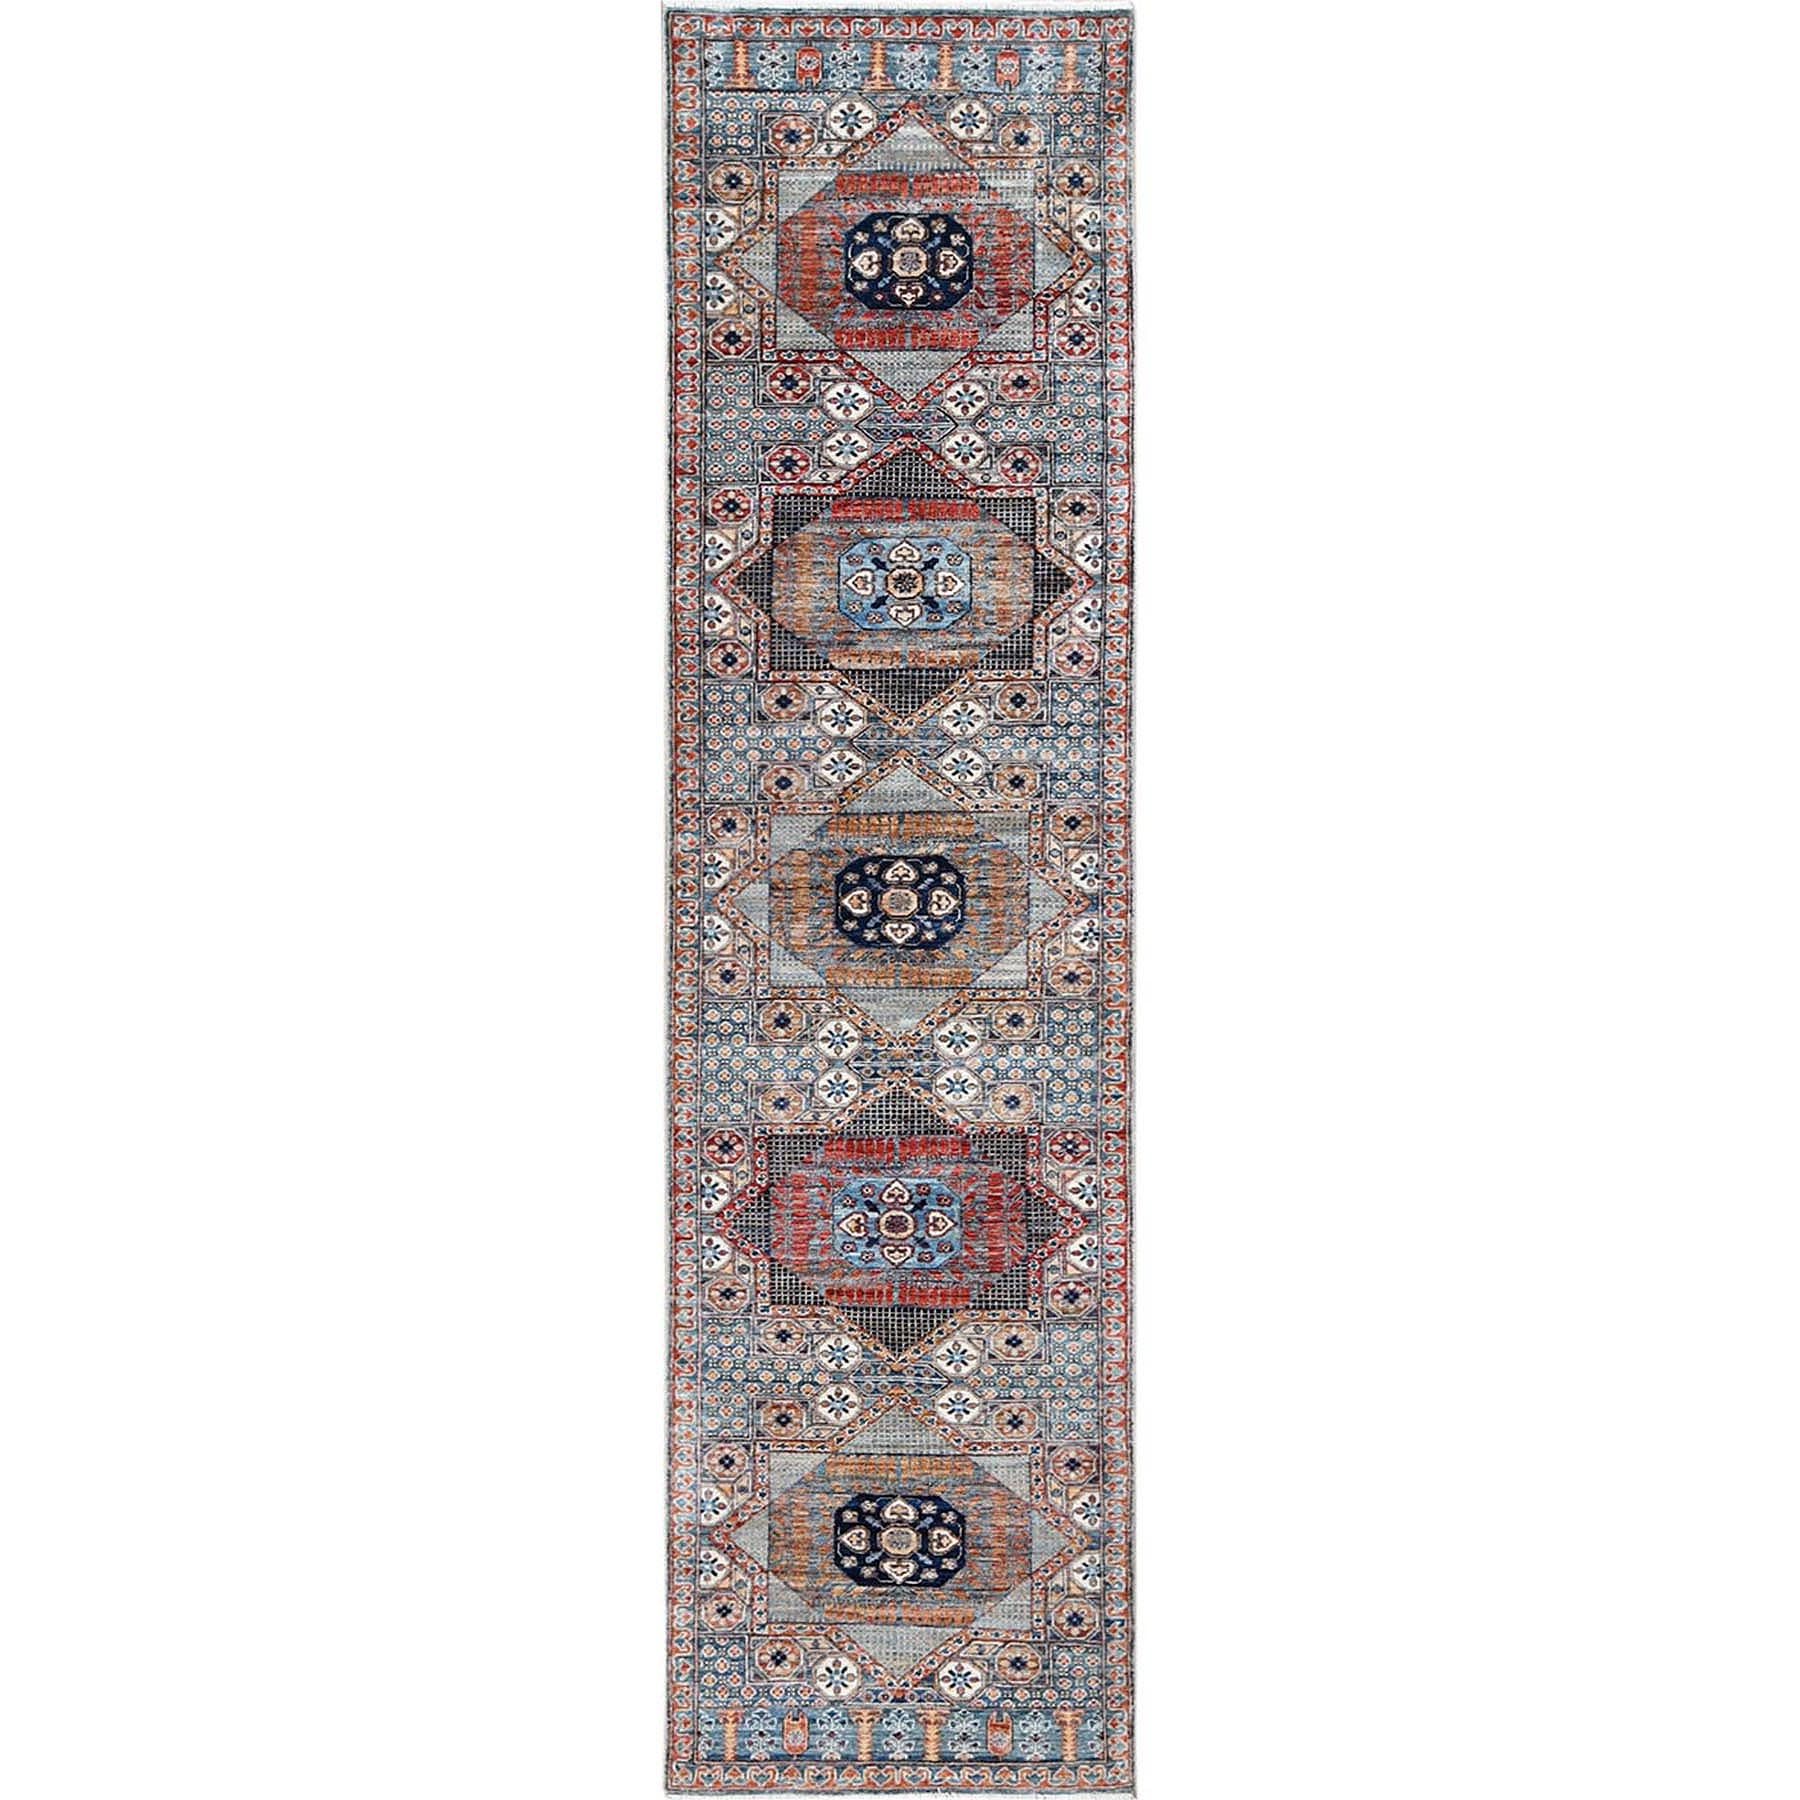 "2'6""x9'10"" Blue Super Fine Peshawar Mamluk Design with Denser Weave Shiny Wool Even Pile Hand Knotted Runner Oriental Rug"